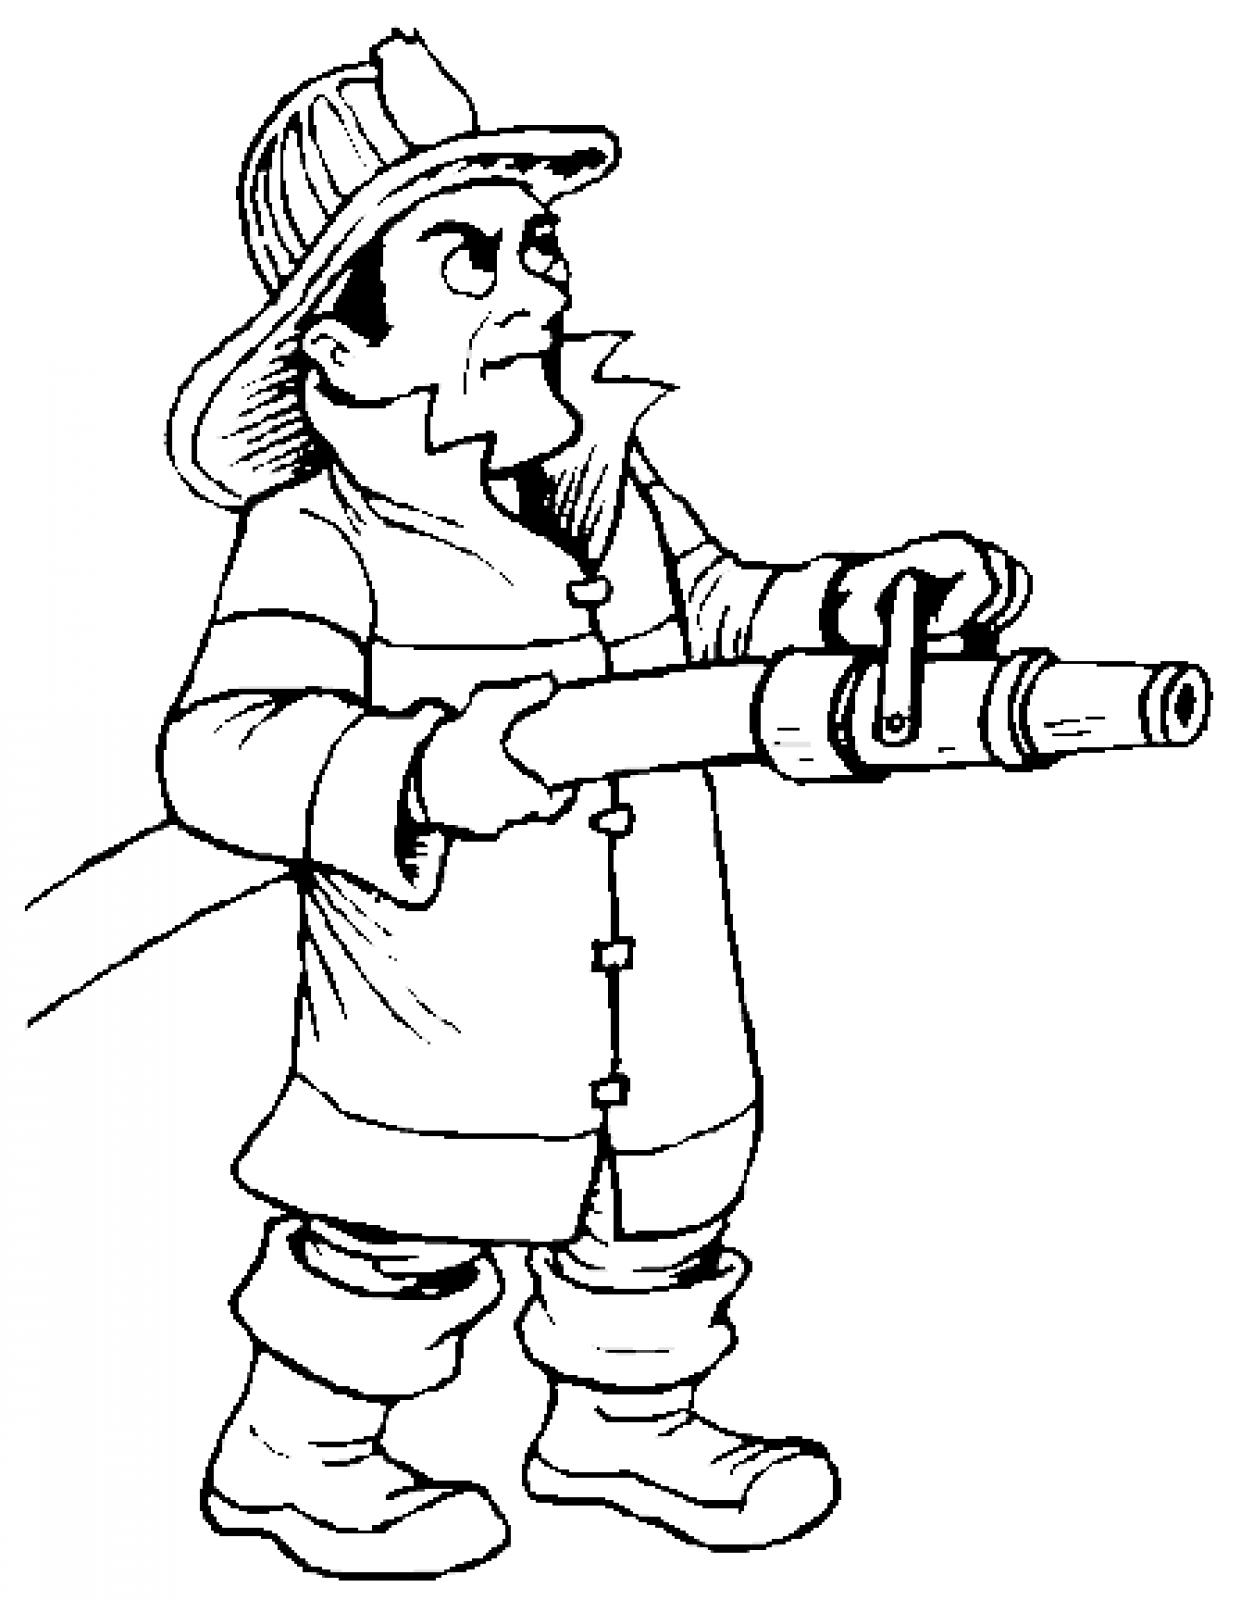 construction worker hat coloring clipart best construction worker coloring page - Construction Worker Coloring Page